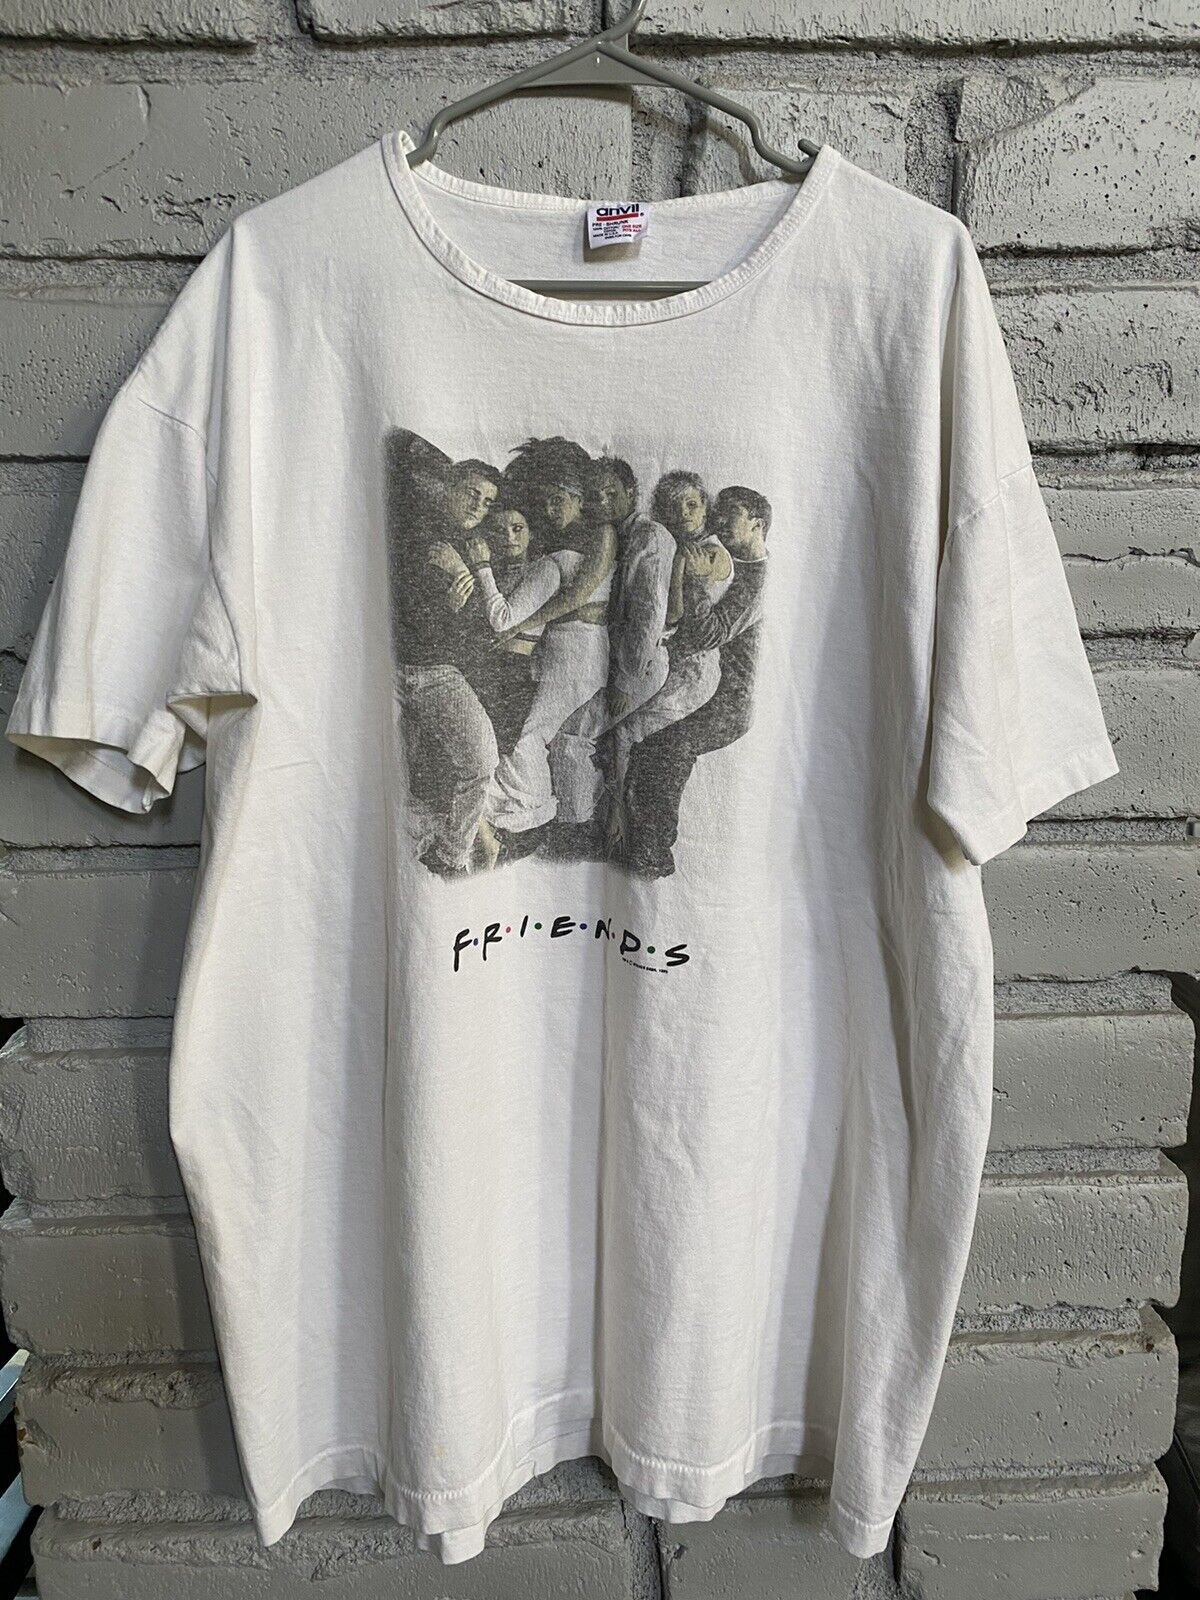 American Television Sitcom!! Vintage 1995 FRIENDS By WARNER BROS T-Shirt Brown Color Extra Large Size Made in Usa